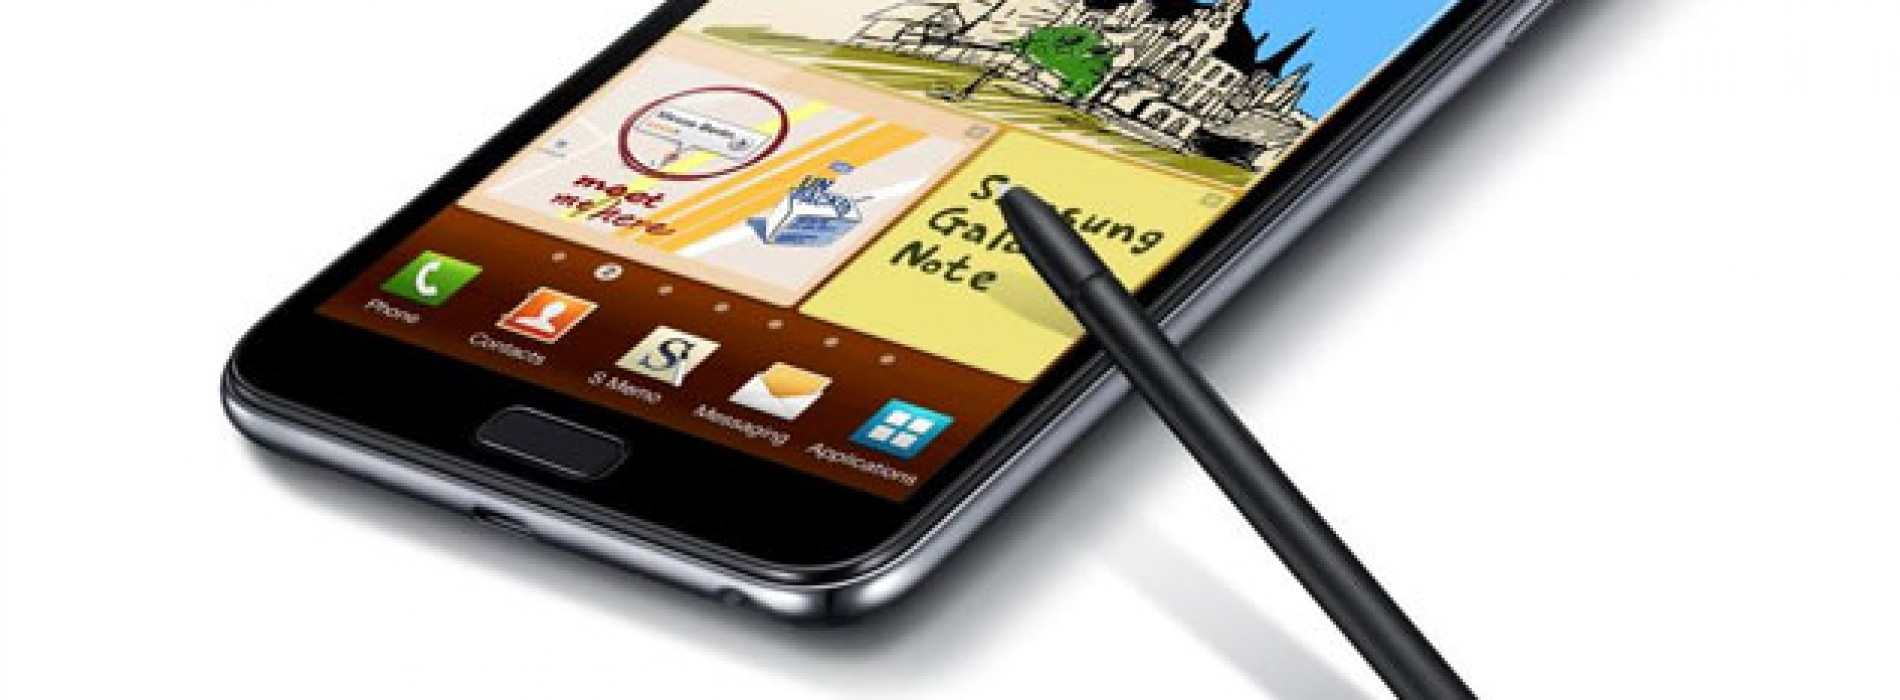 Samsung moves 2 million Galaxy Notes